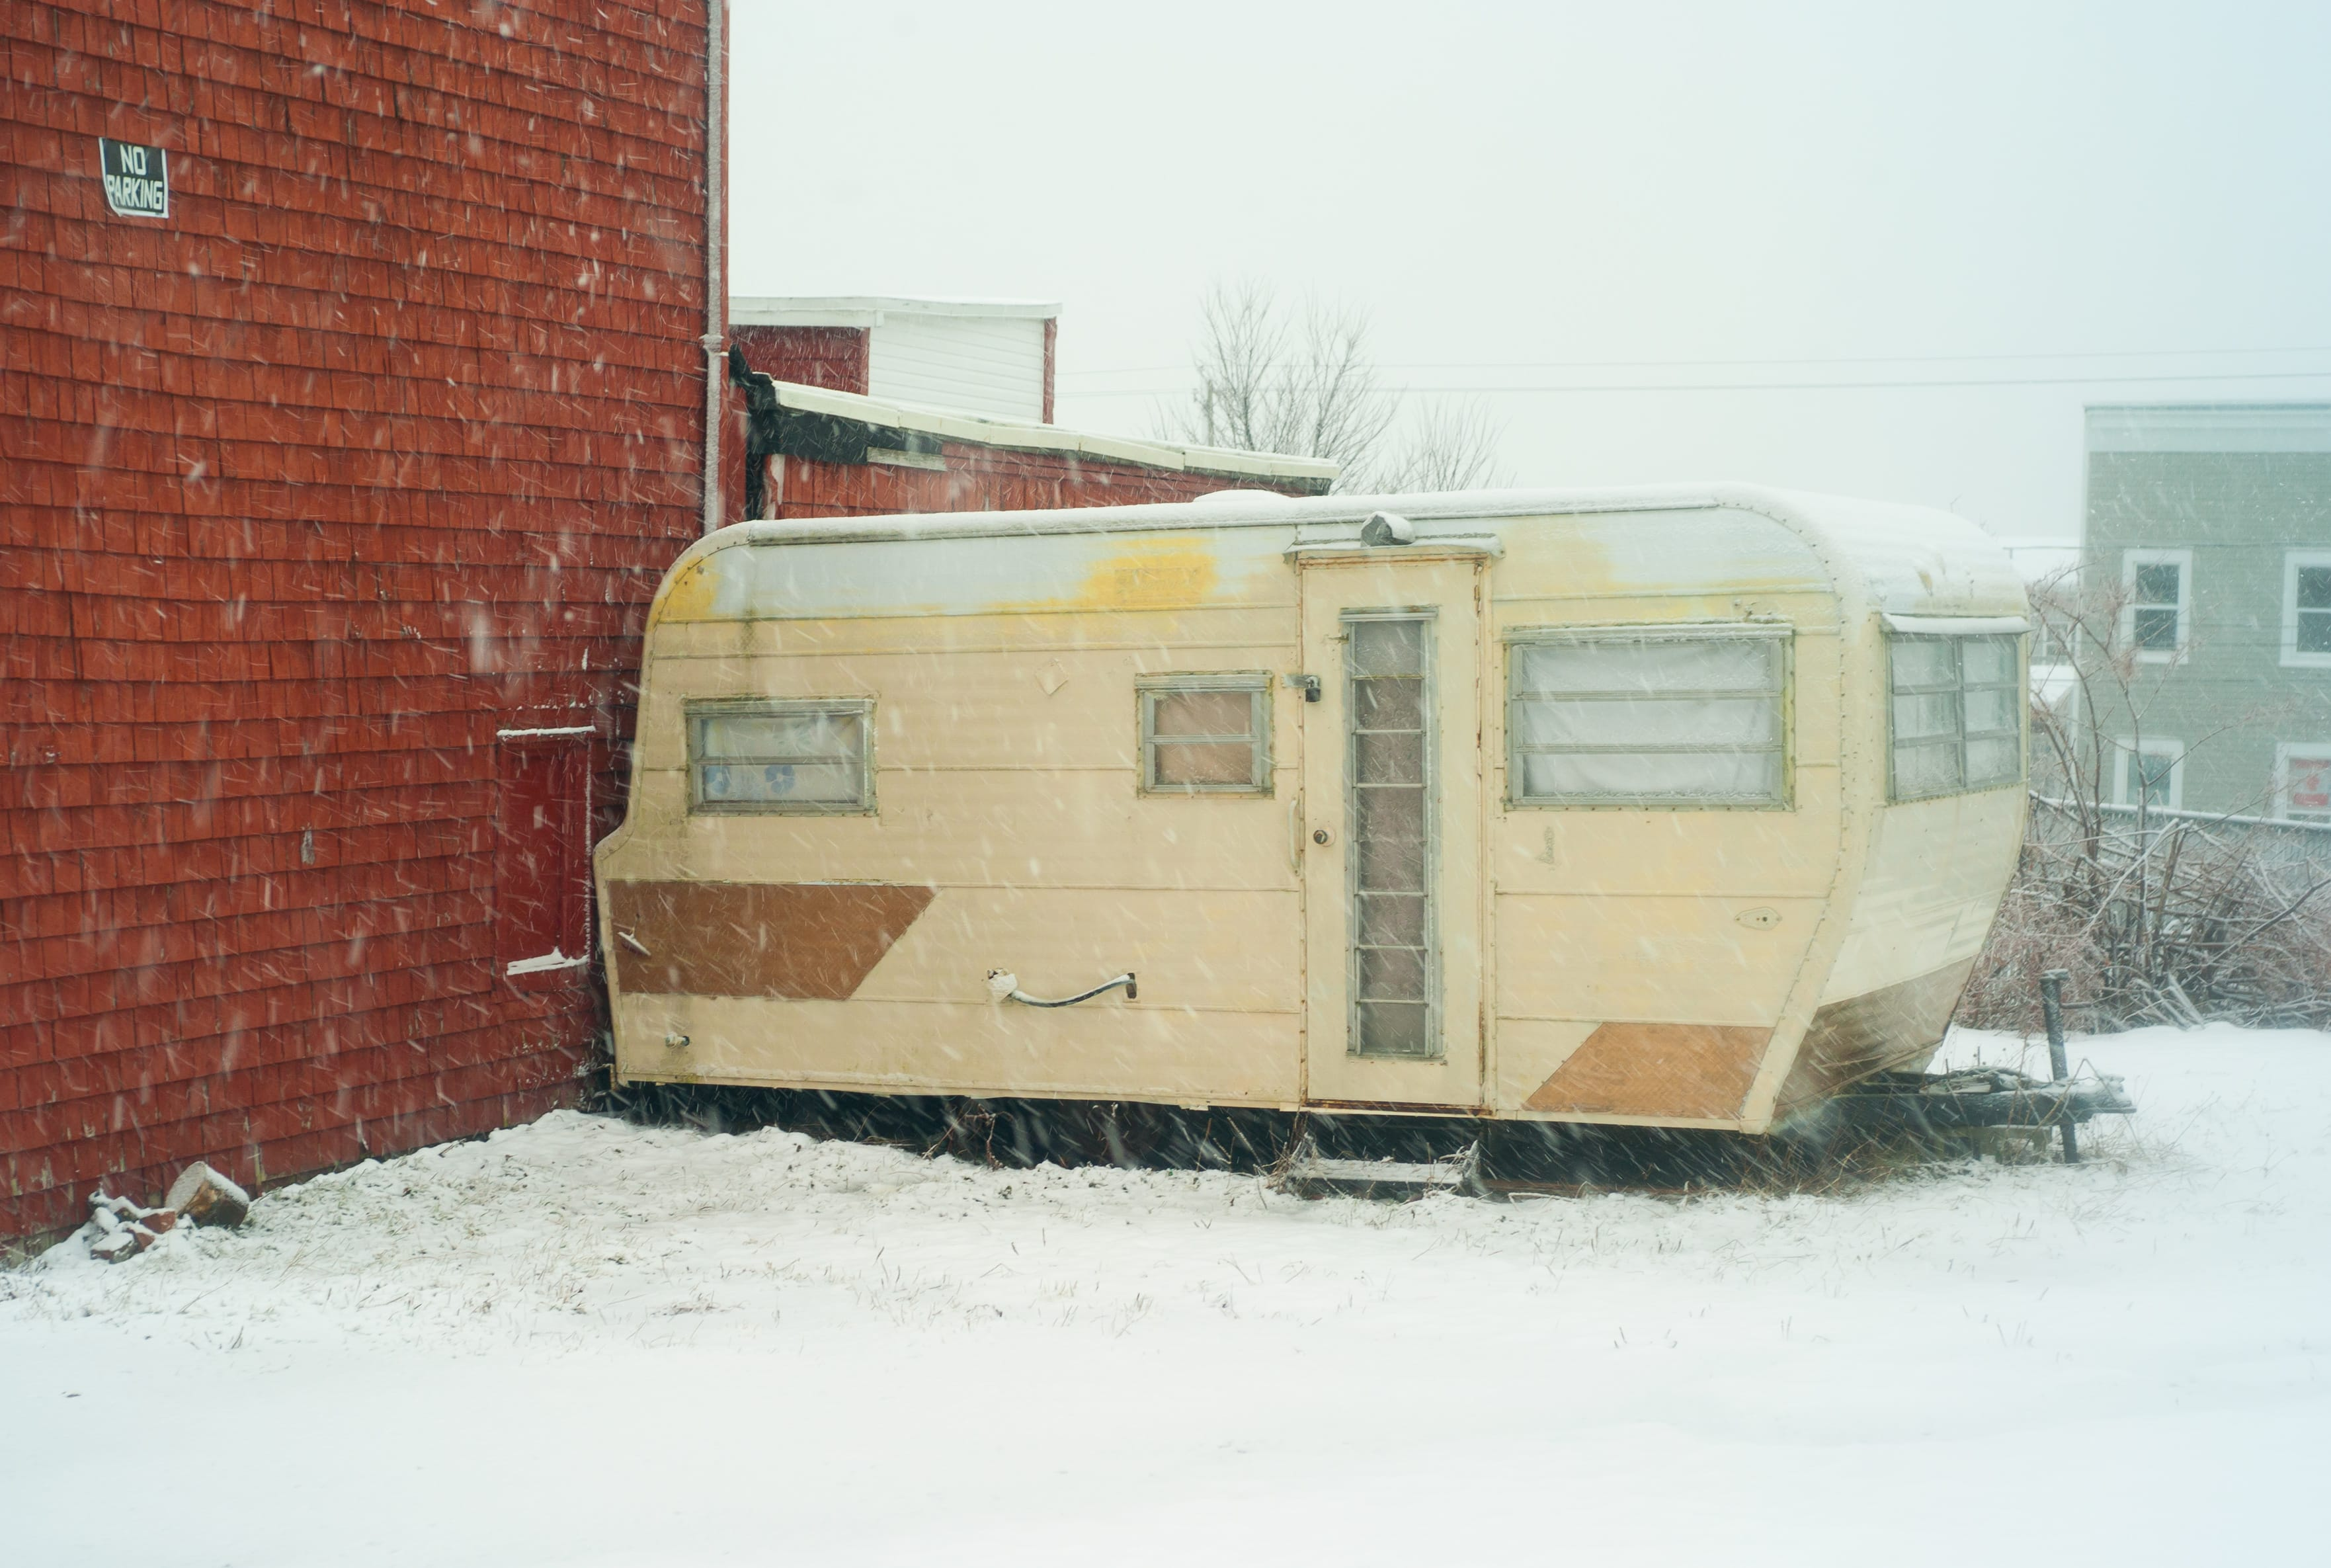 A photograph depicting Trailer in the Snow